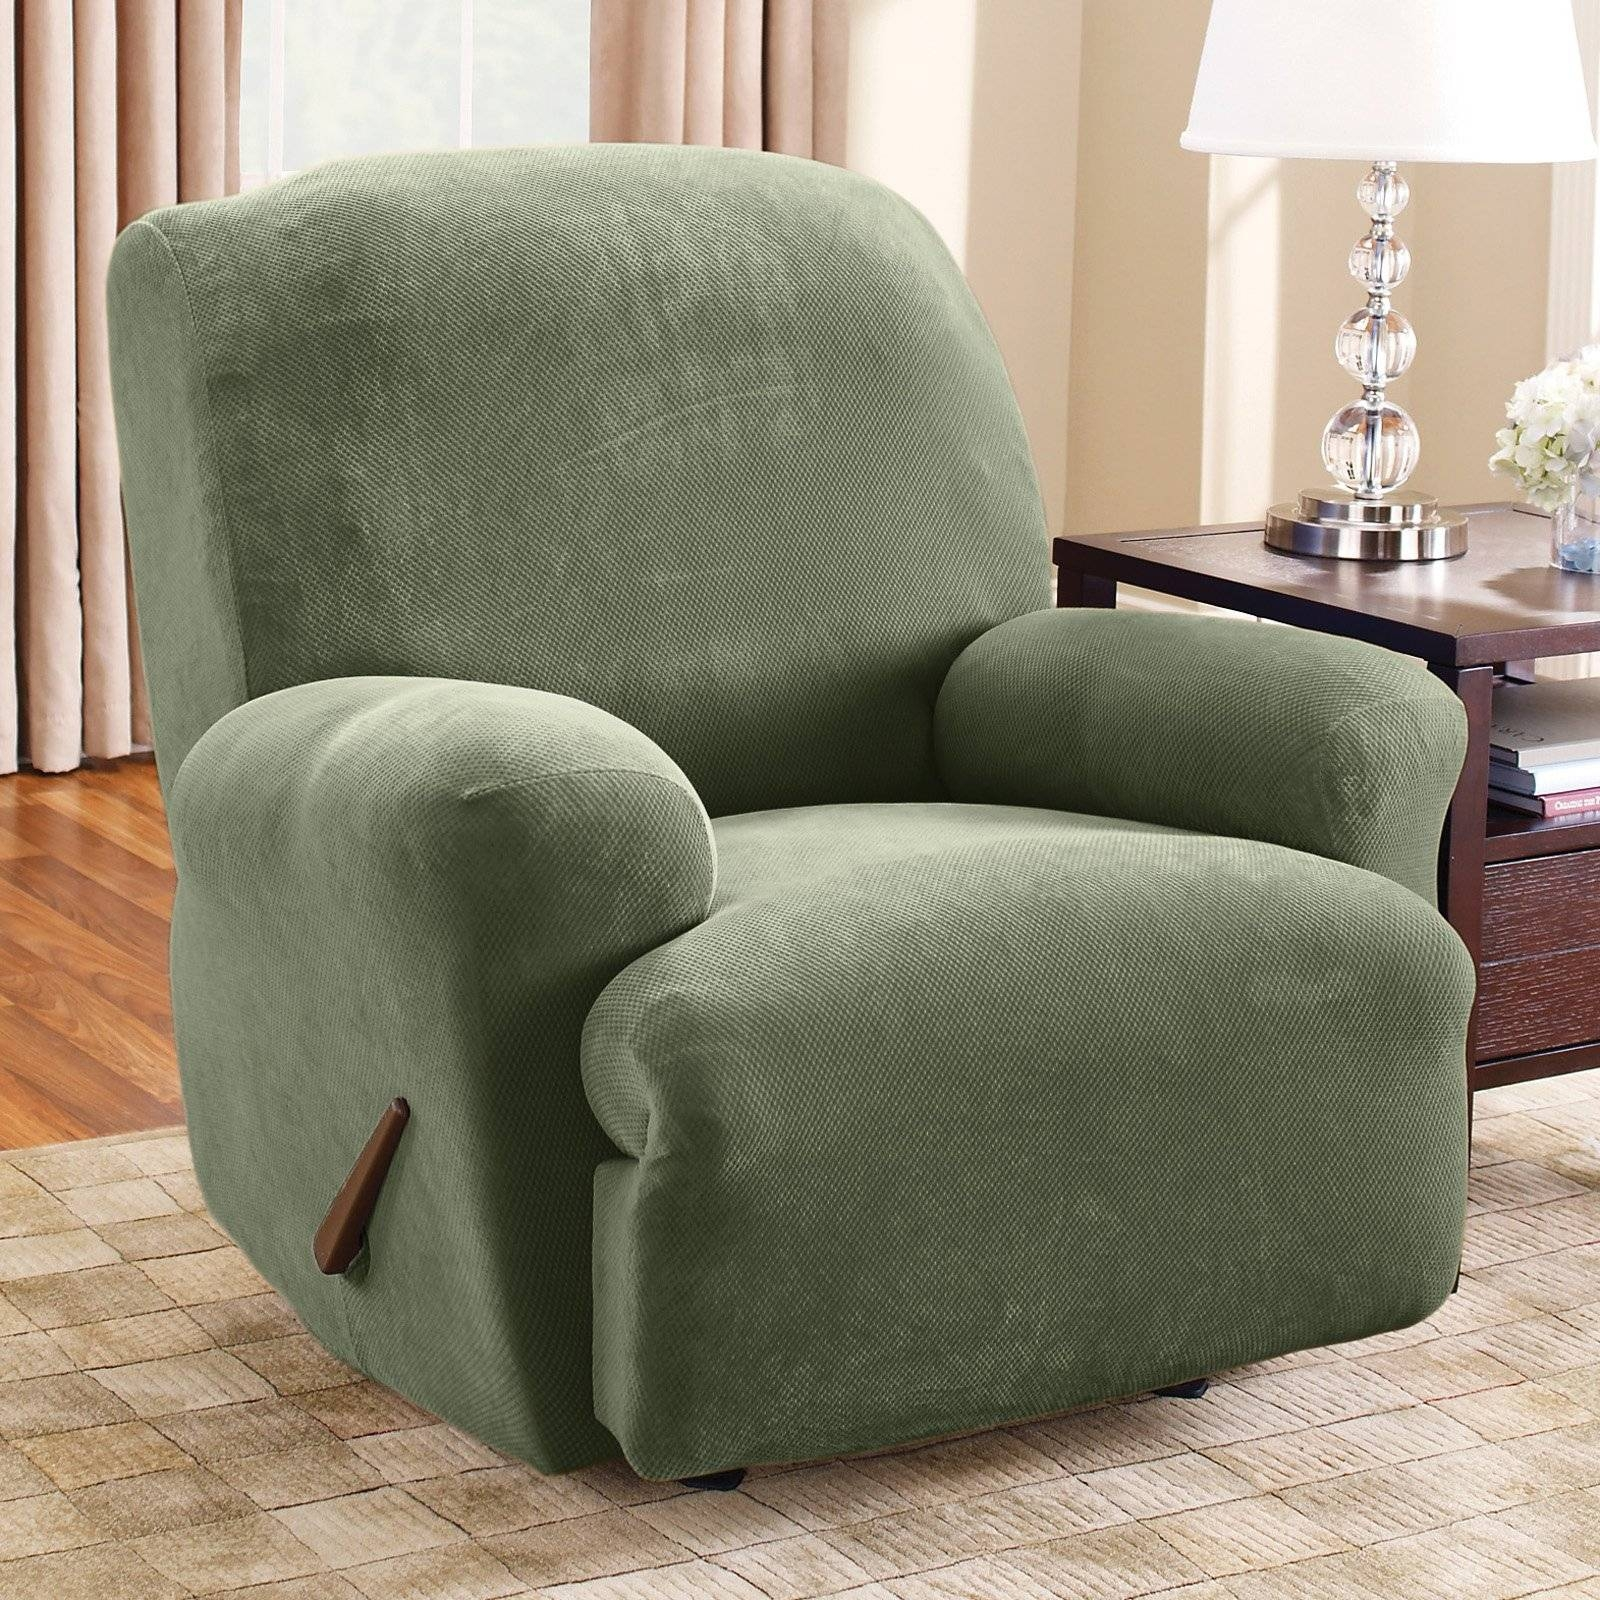 Furniture: Slip Covers For Reclining Sofas | Amazon Sofa inside Slipcover for Recliner Sofas (Image 2 of 15)